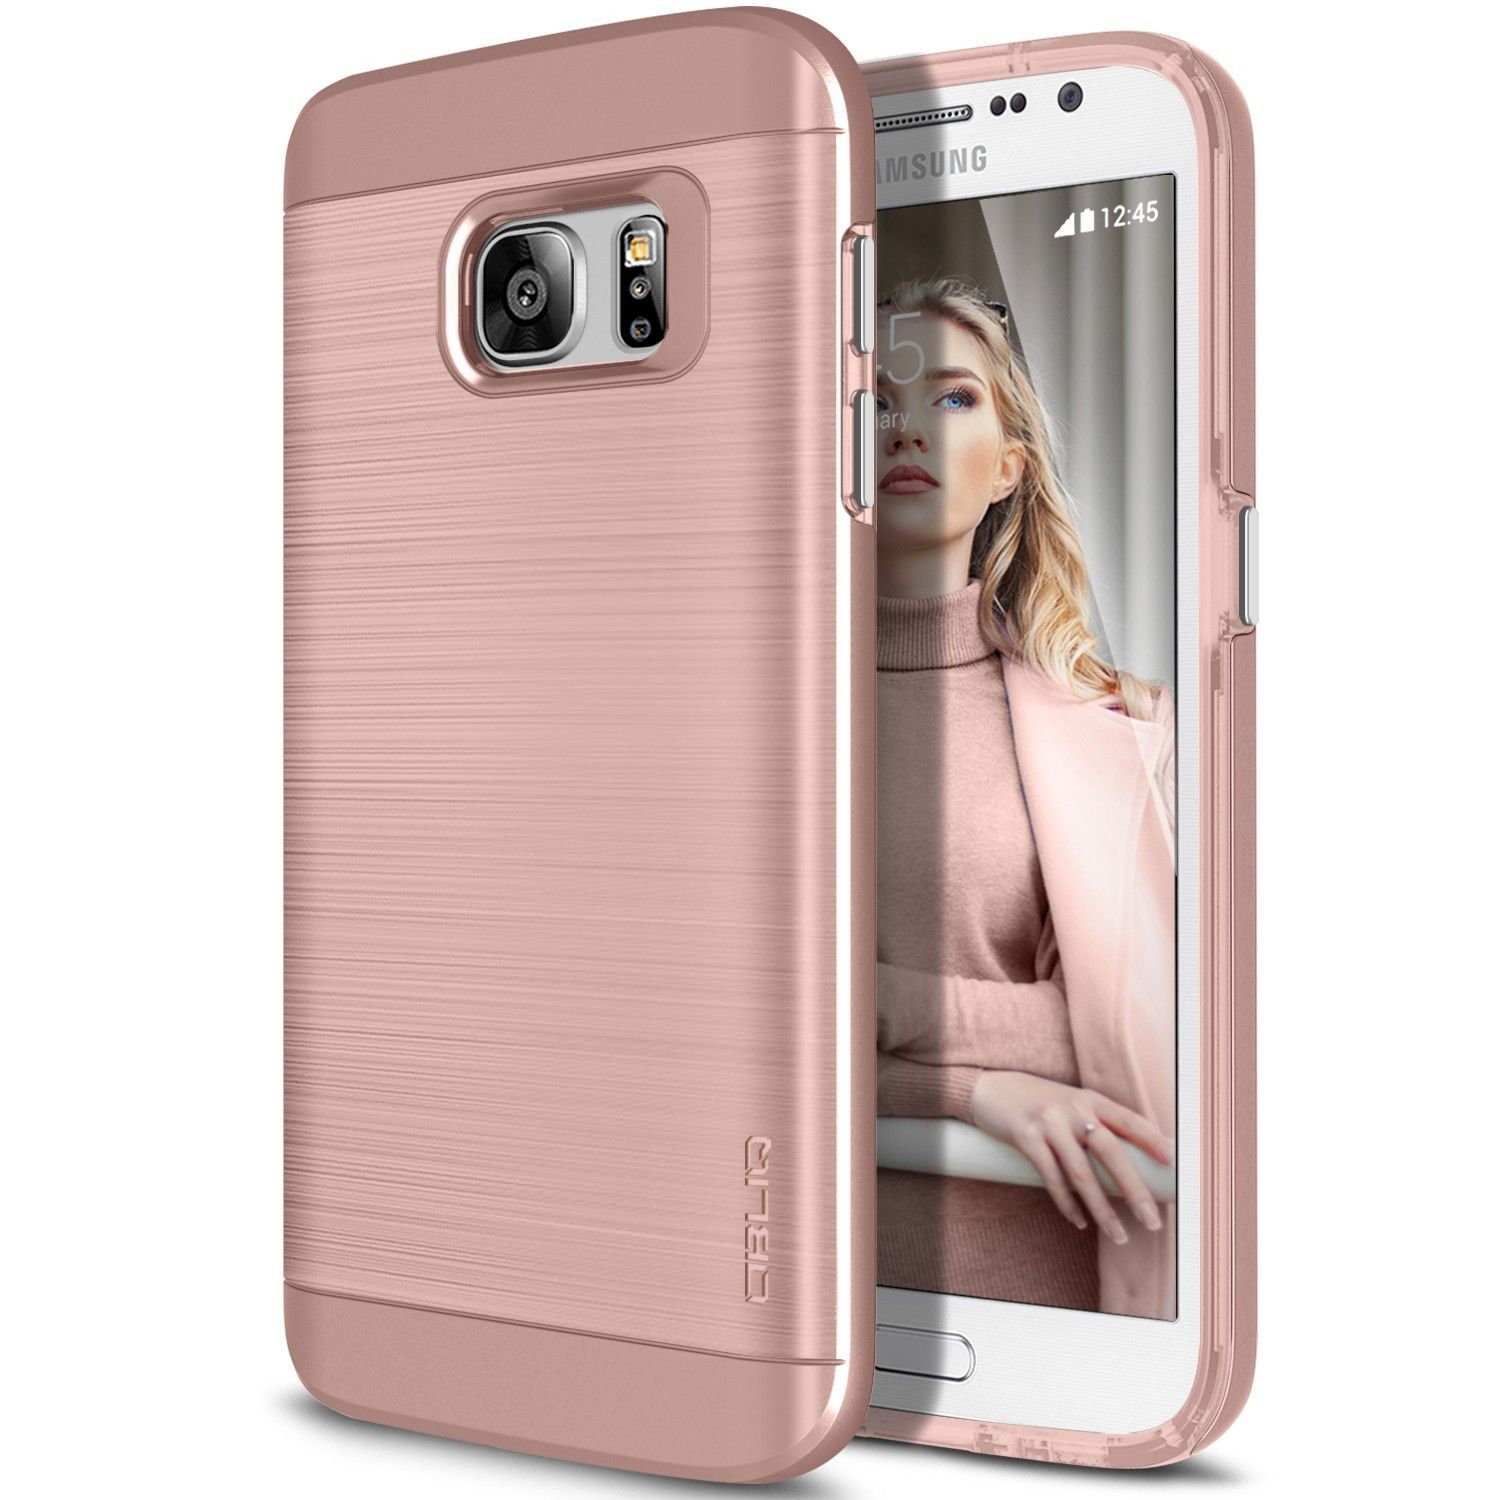 c5457cb0619 OBLIQ Premium Slim Meta[NEW Generation] Series: Designed for the Samsung  Galaxy S7 smart phone device, and compatible with Verizon, AT&T, T-Mobile,  Sprint, ...